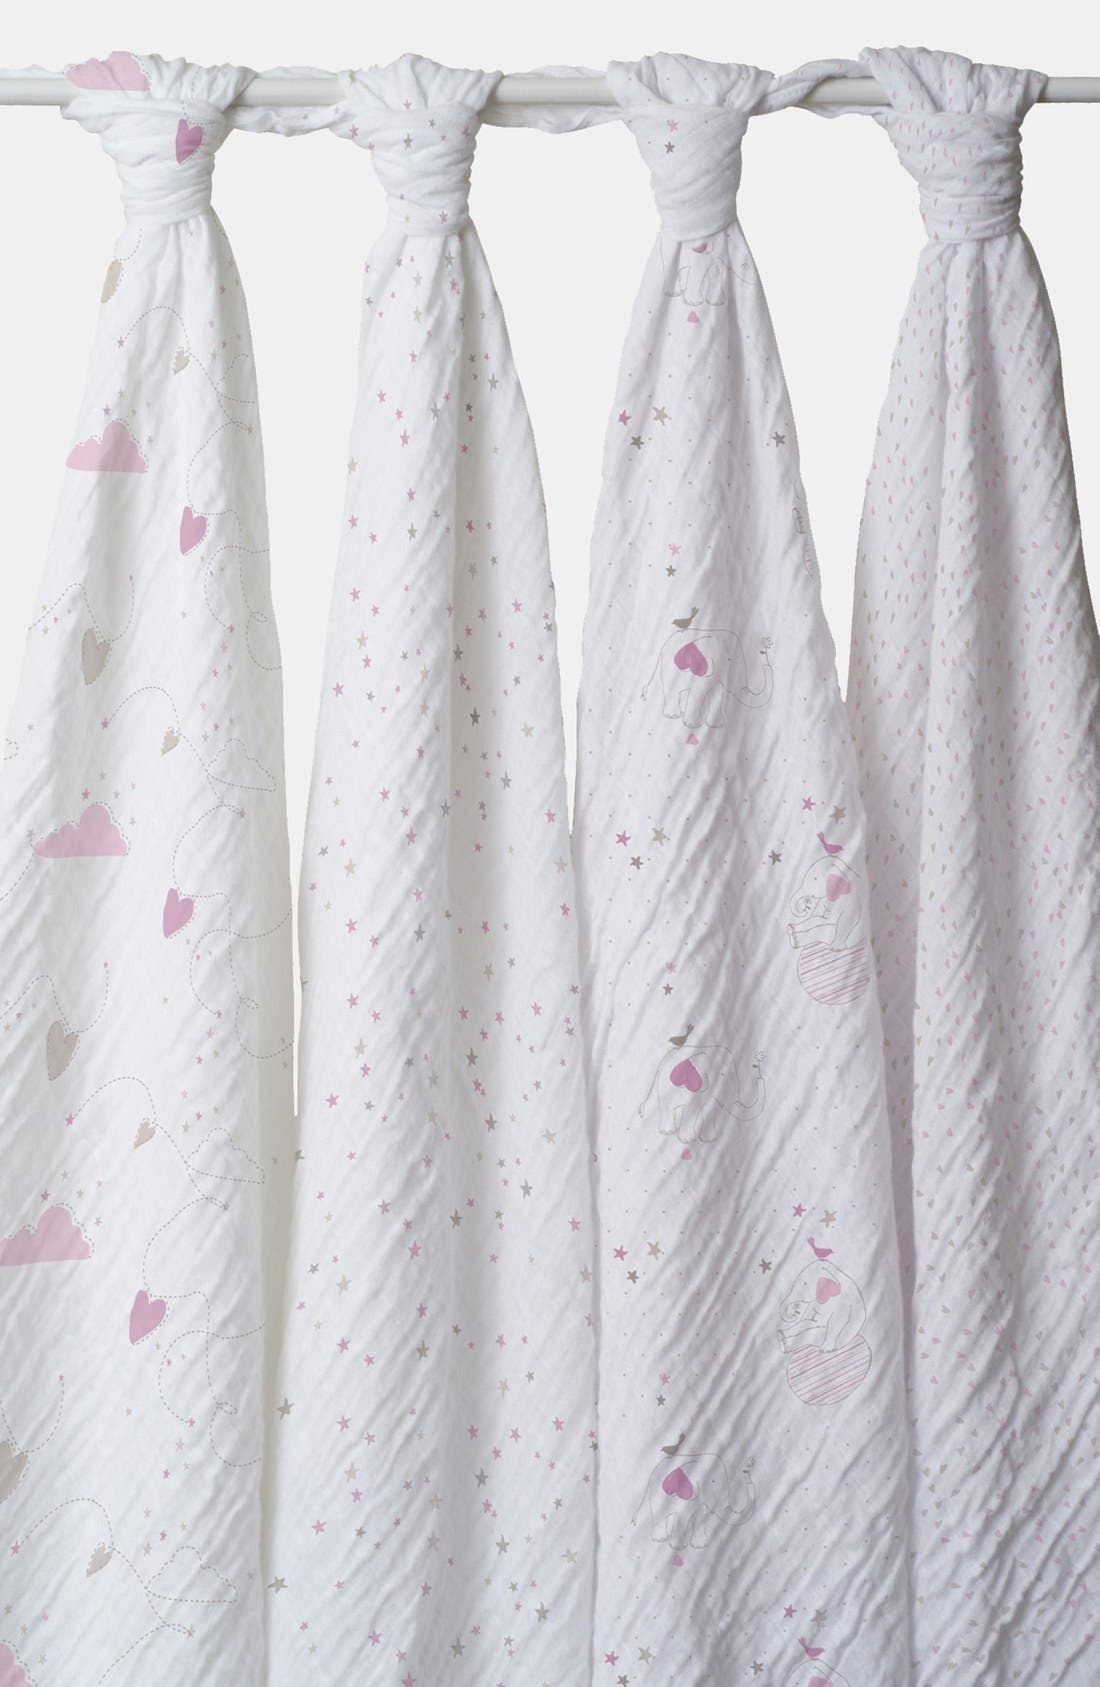 Main Image - aden + anais Classic Swaddling Cloths (4-Pack)